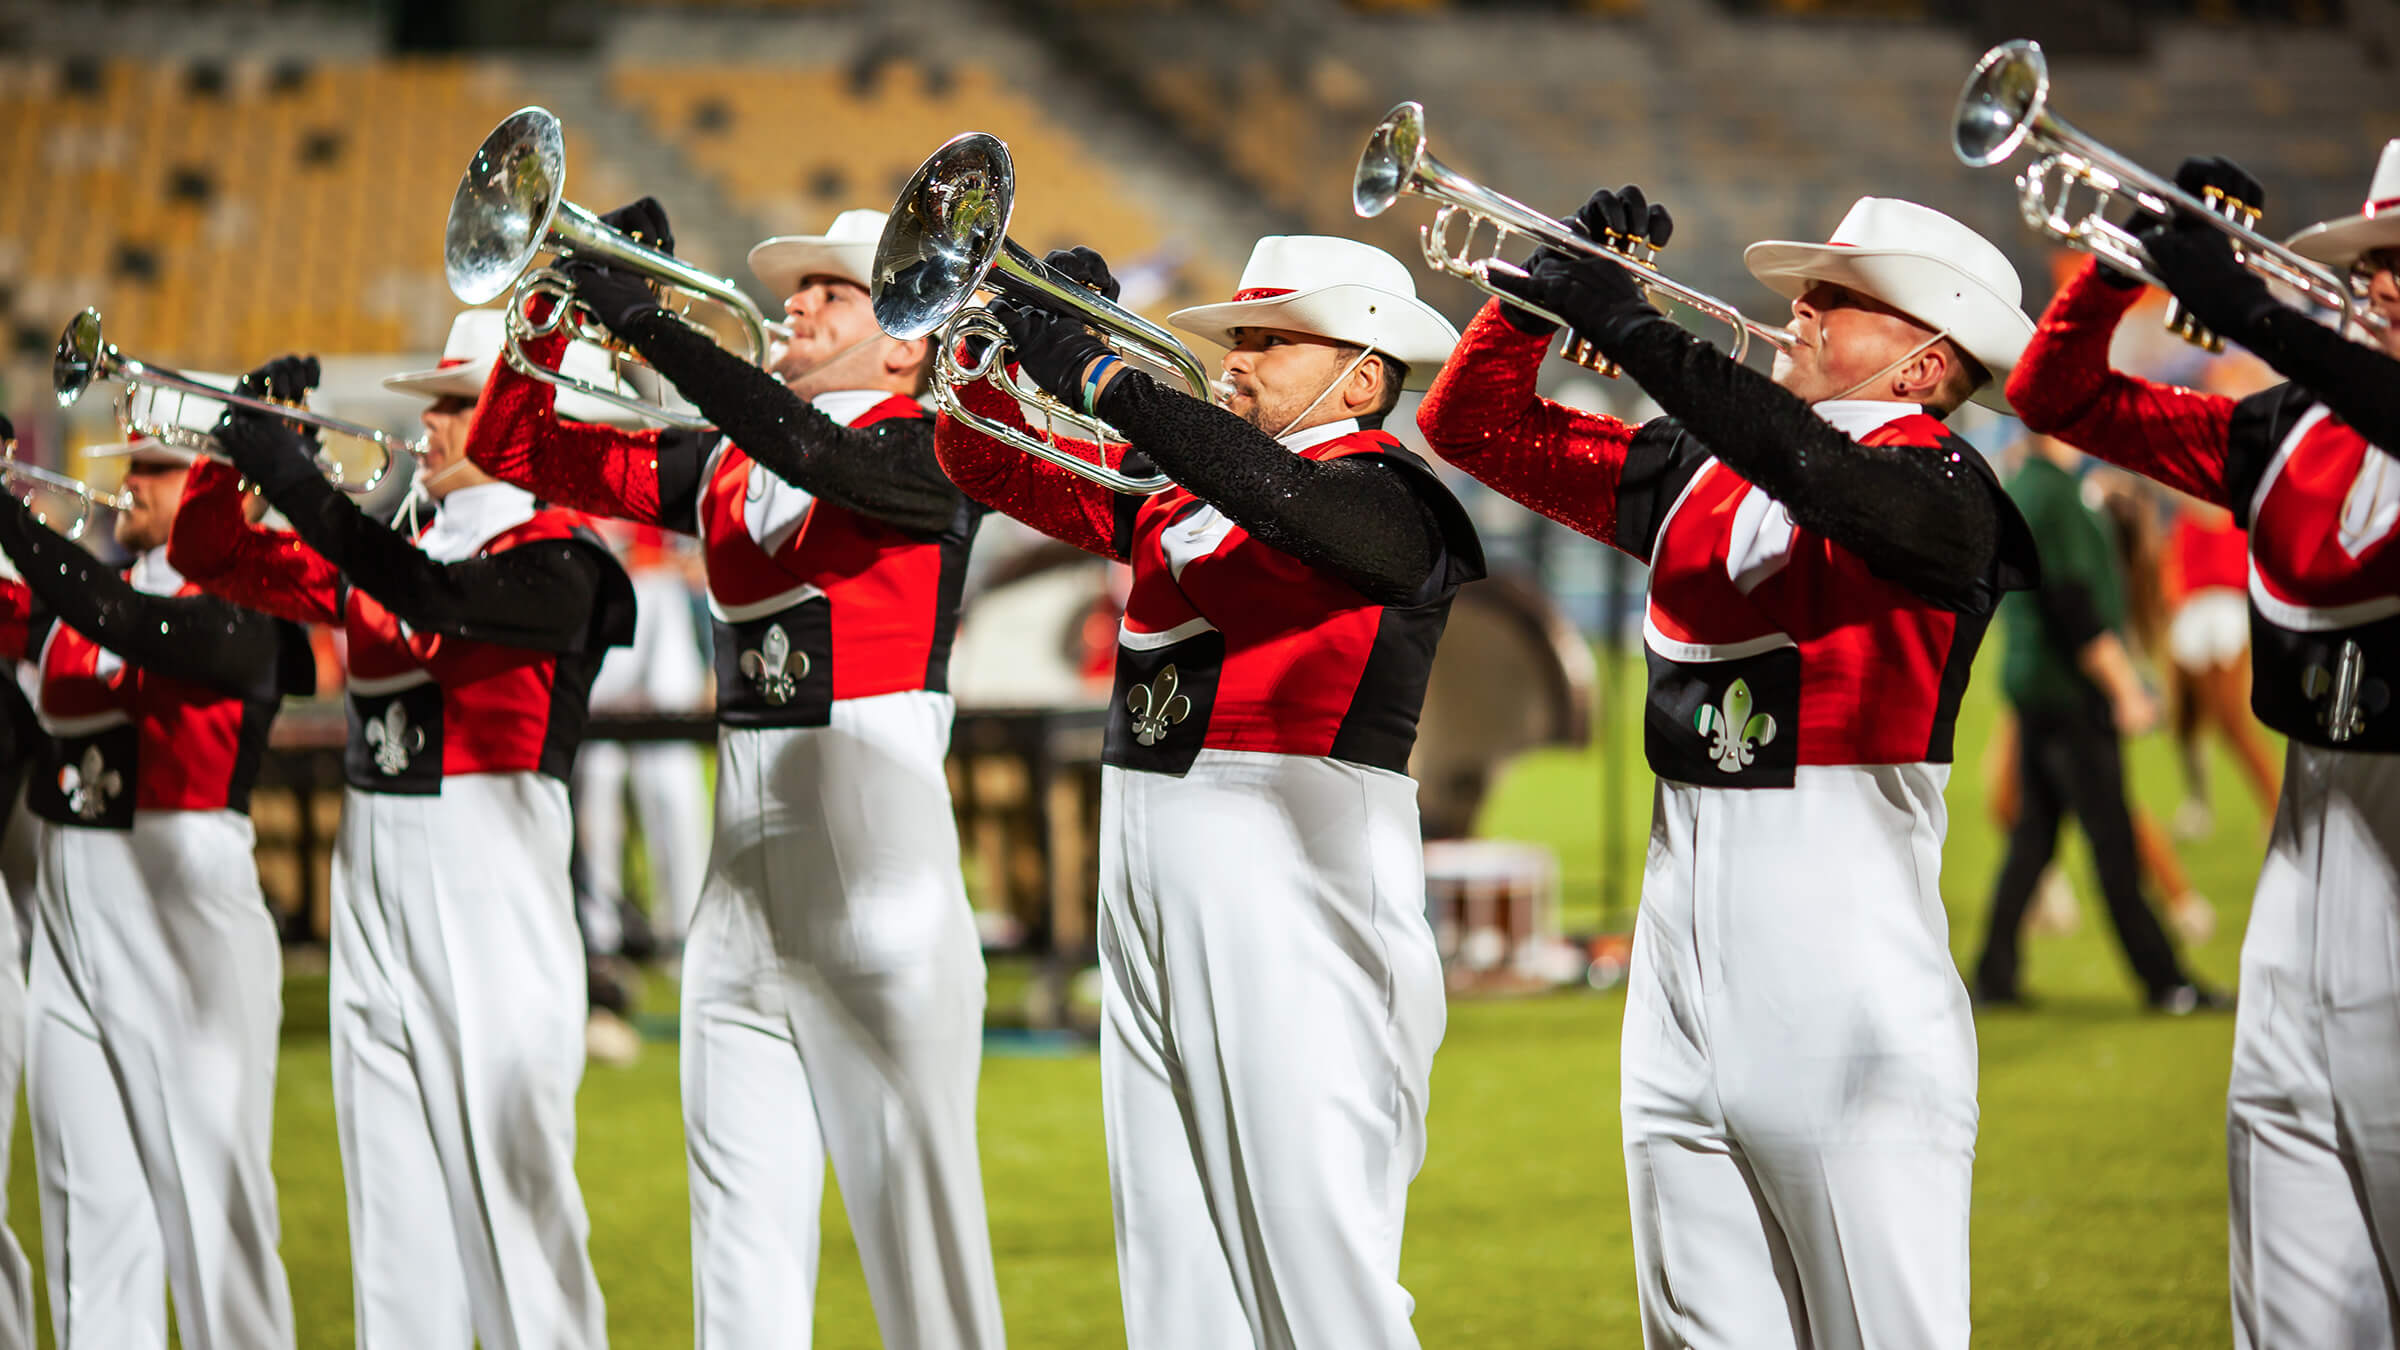 Reigning British champs set sights on 2020 DCI World Championships